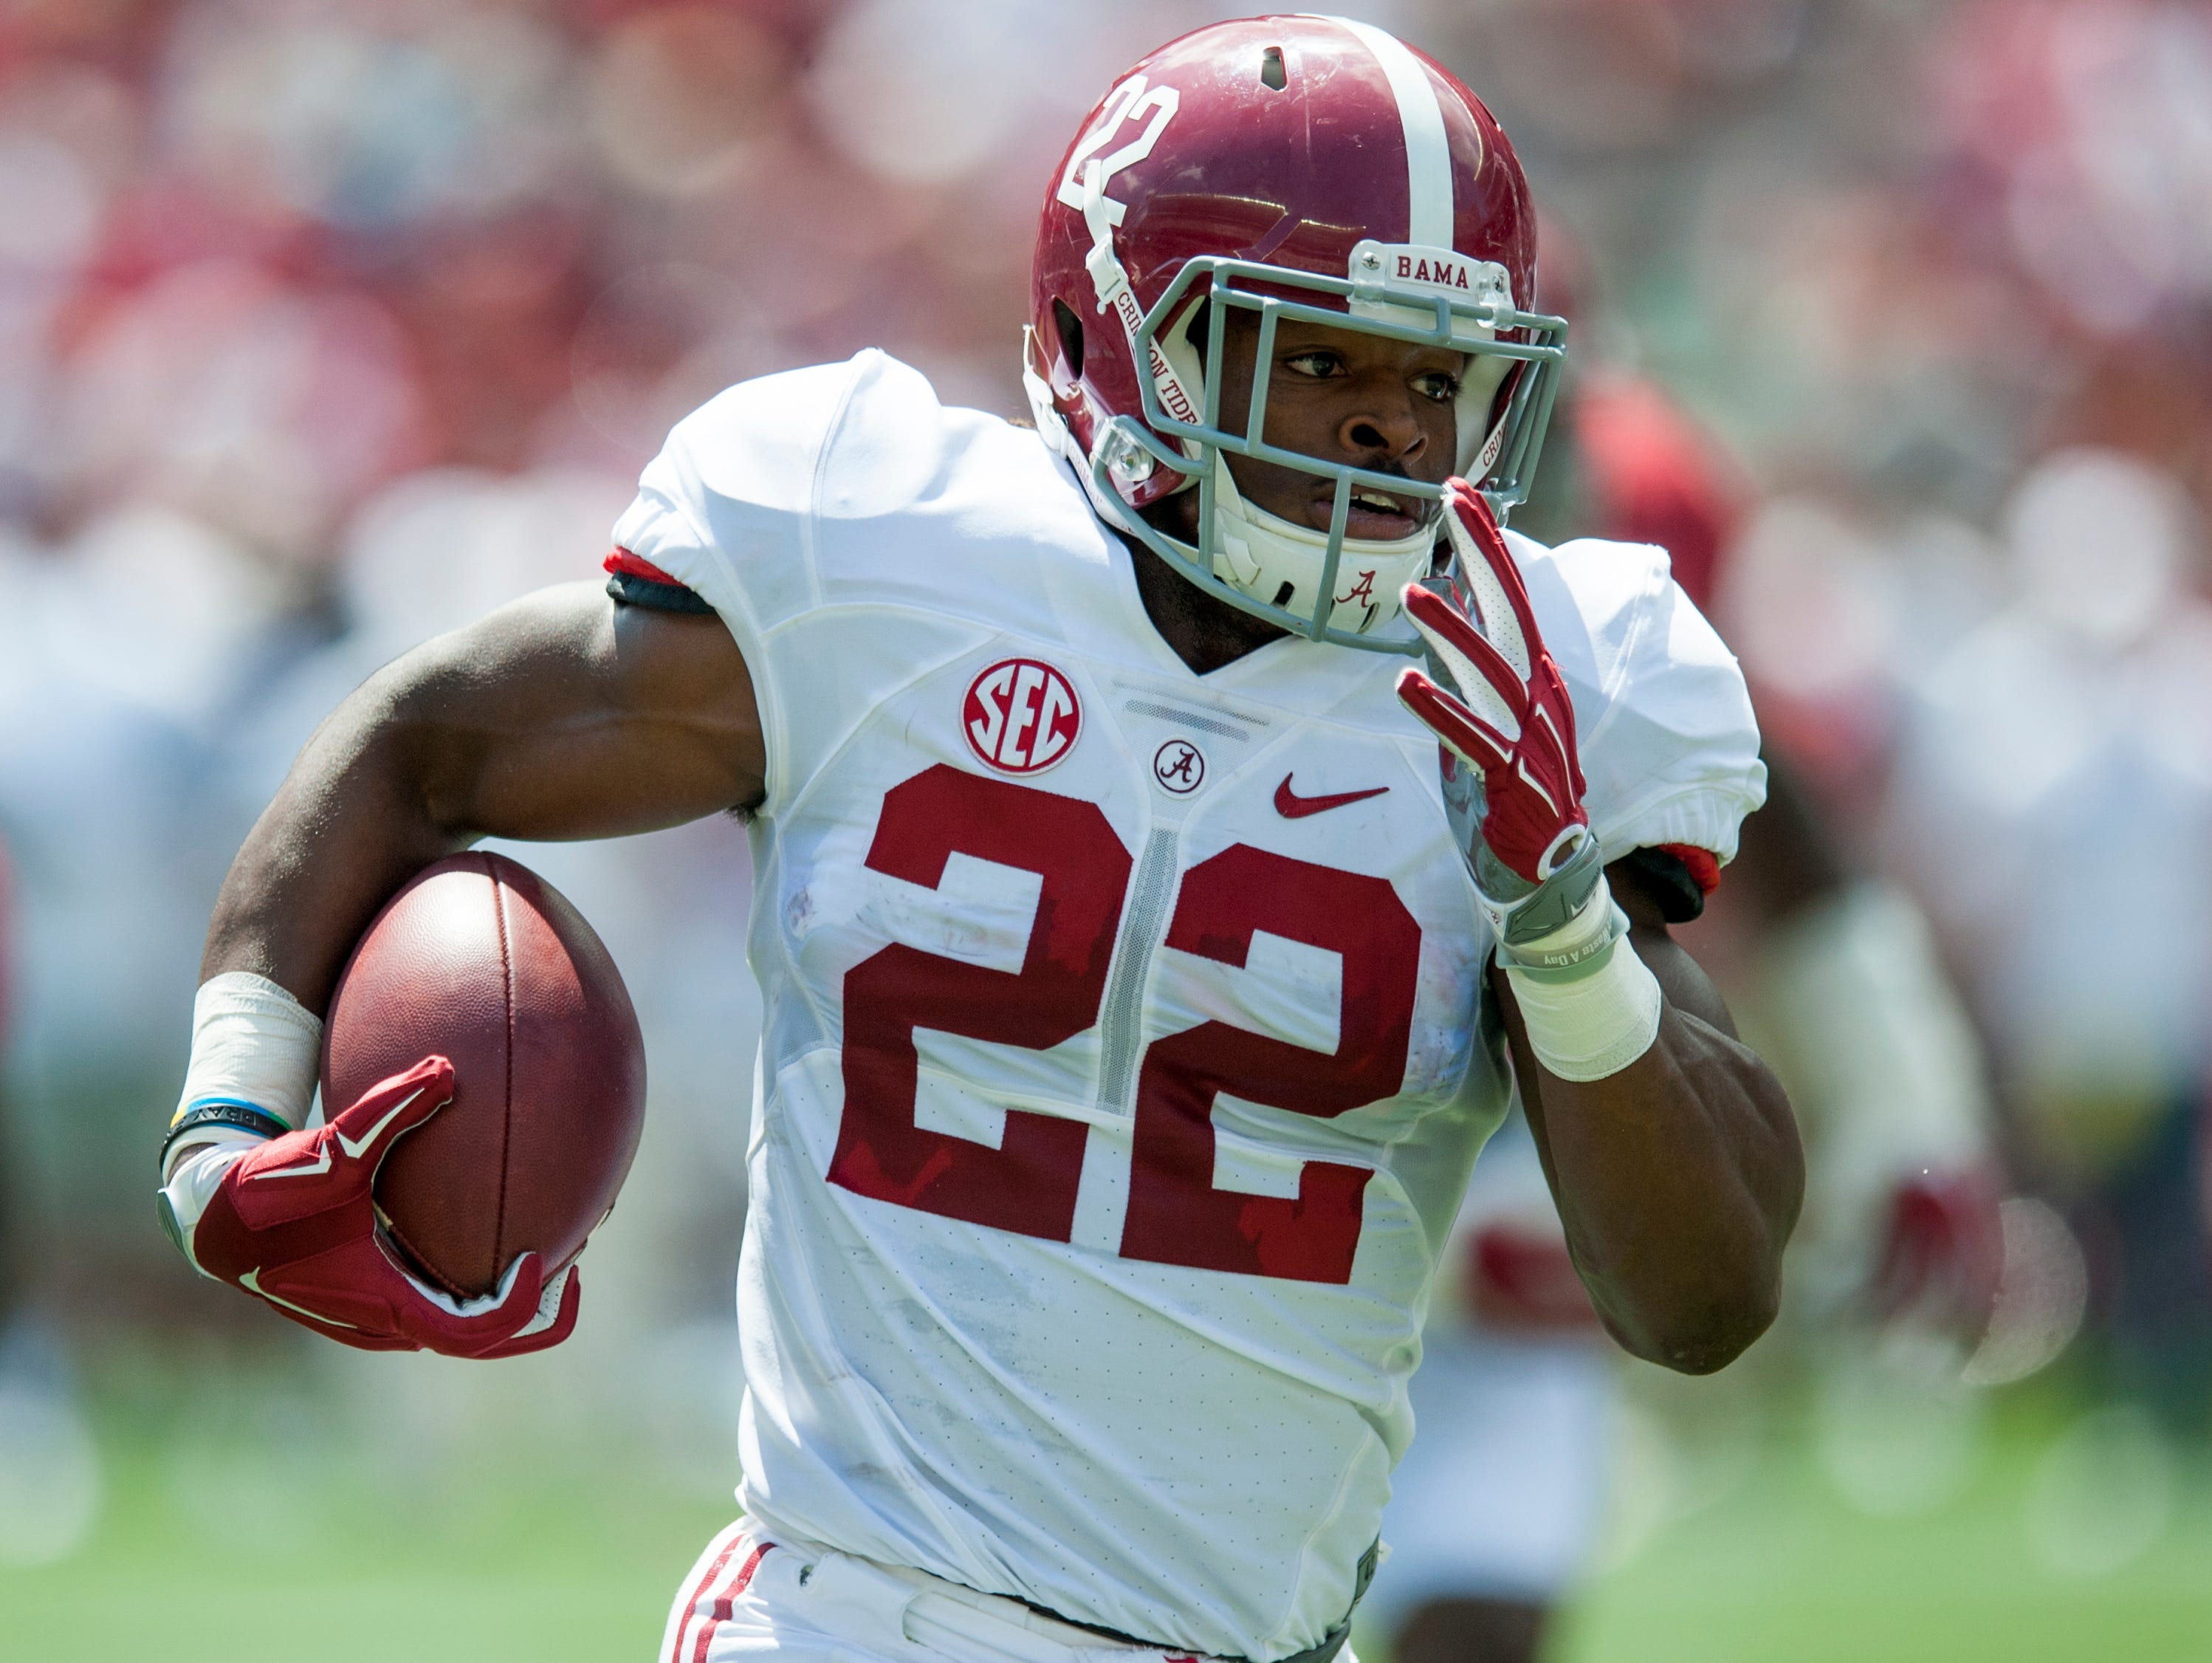 Alabama running back Najee Harris (22) carries during the A-Day scrimmage game at Bryant Denny Stadium in Tuscaloosa, Ala., on Saturday April 22, 2017.